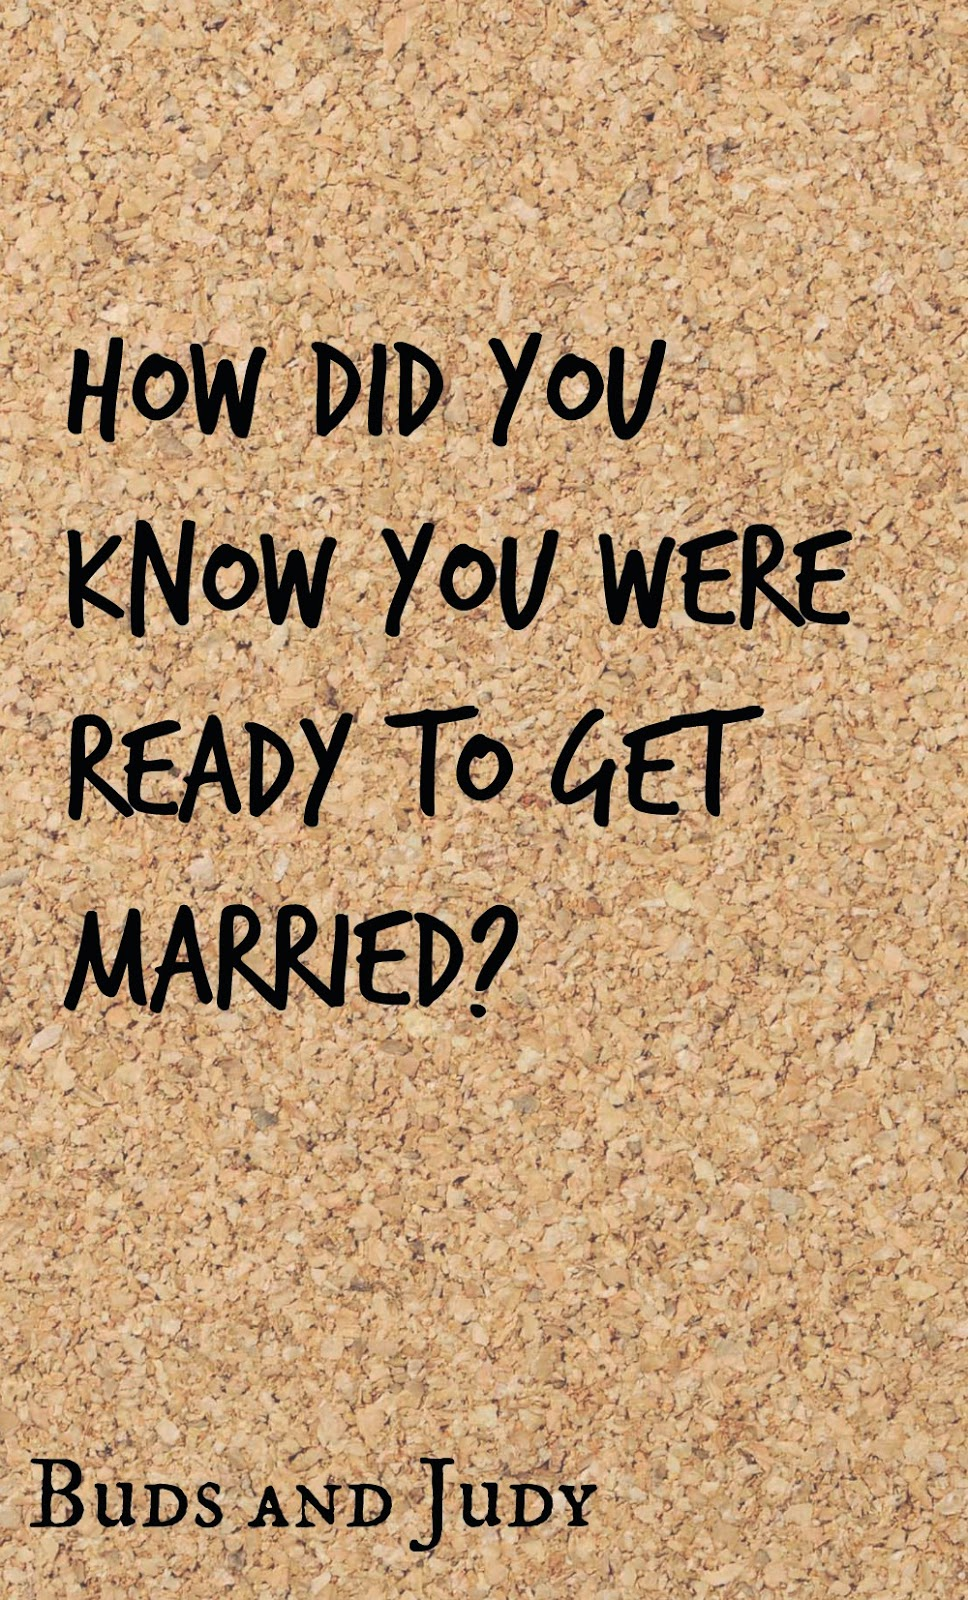 How did you know you were ready to get married, questions before getting married